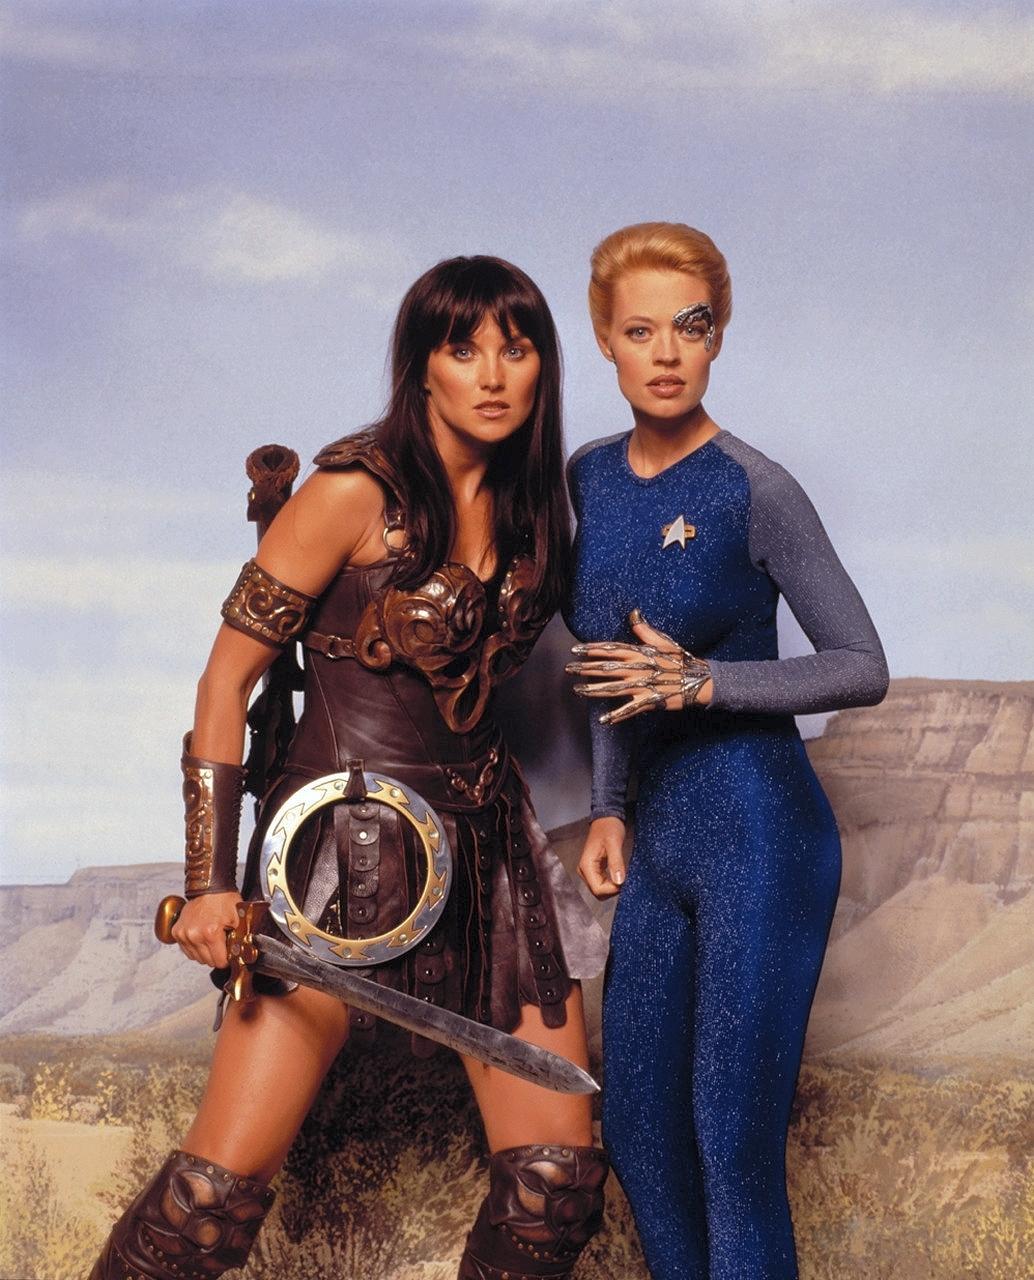 The Crossover That Should've Happened: Xena Vs Star Trek